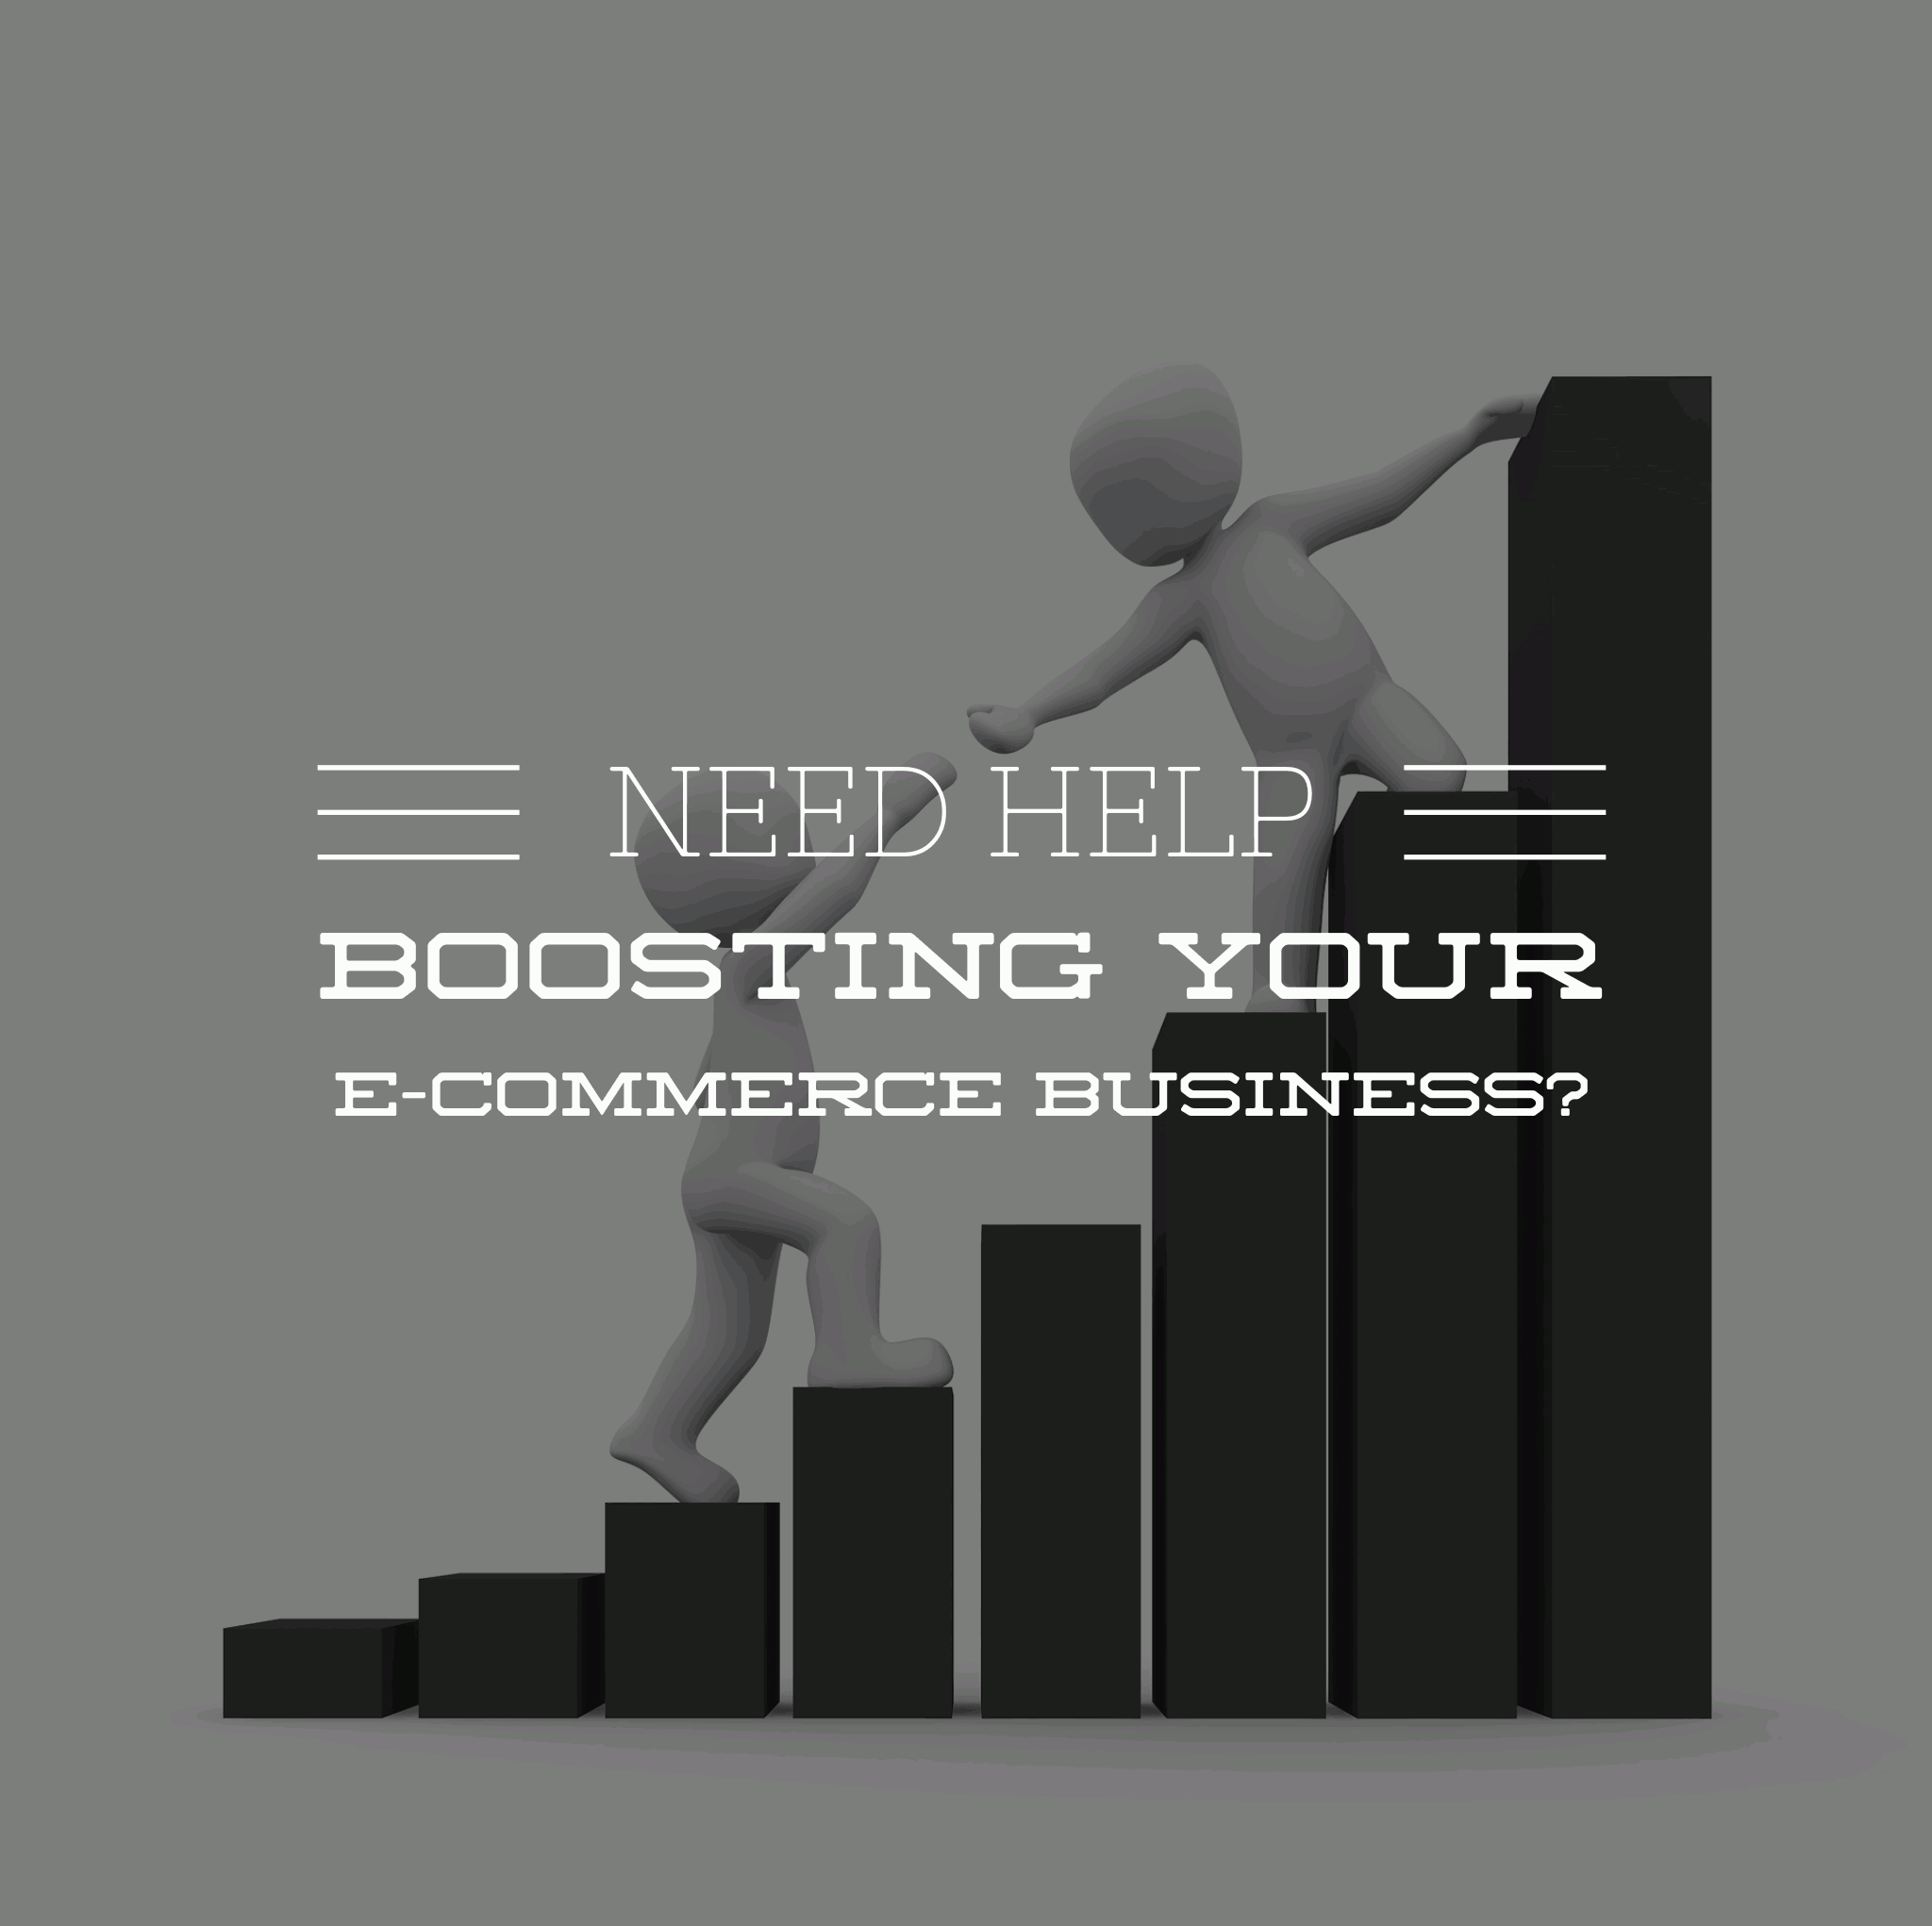 4 Ways to Give Your E-Commerce Business a Boost